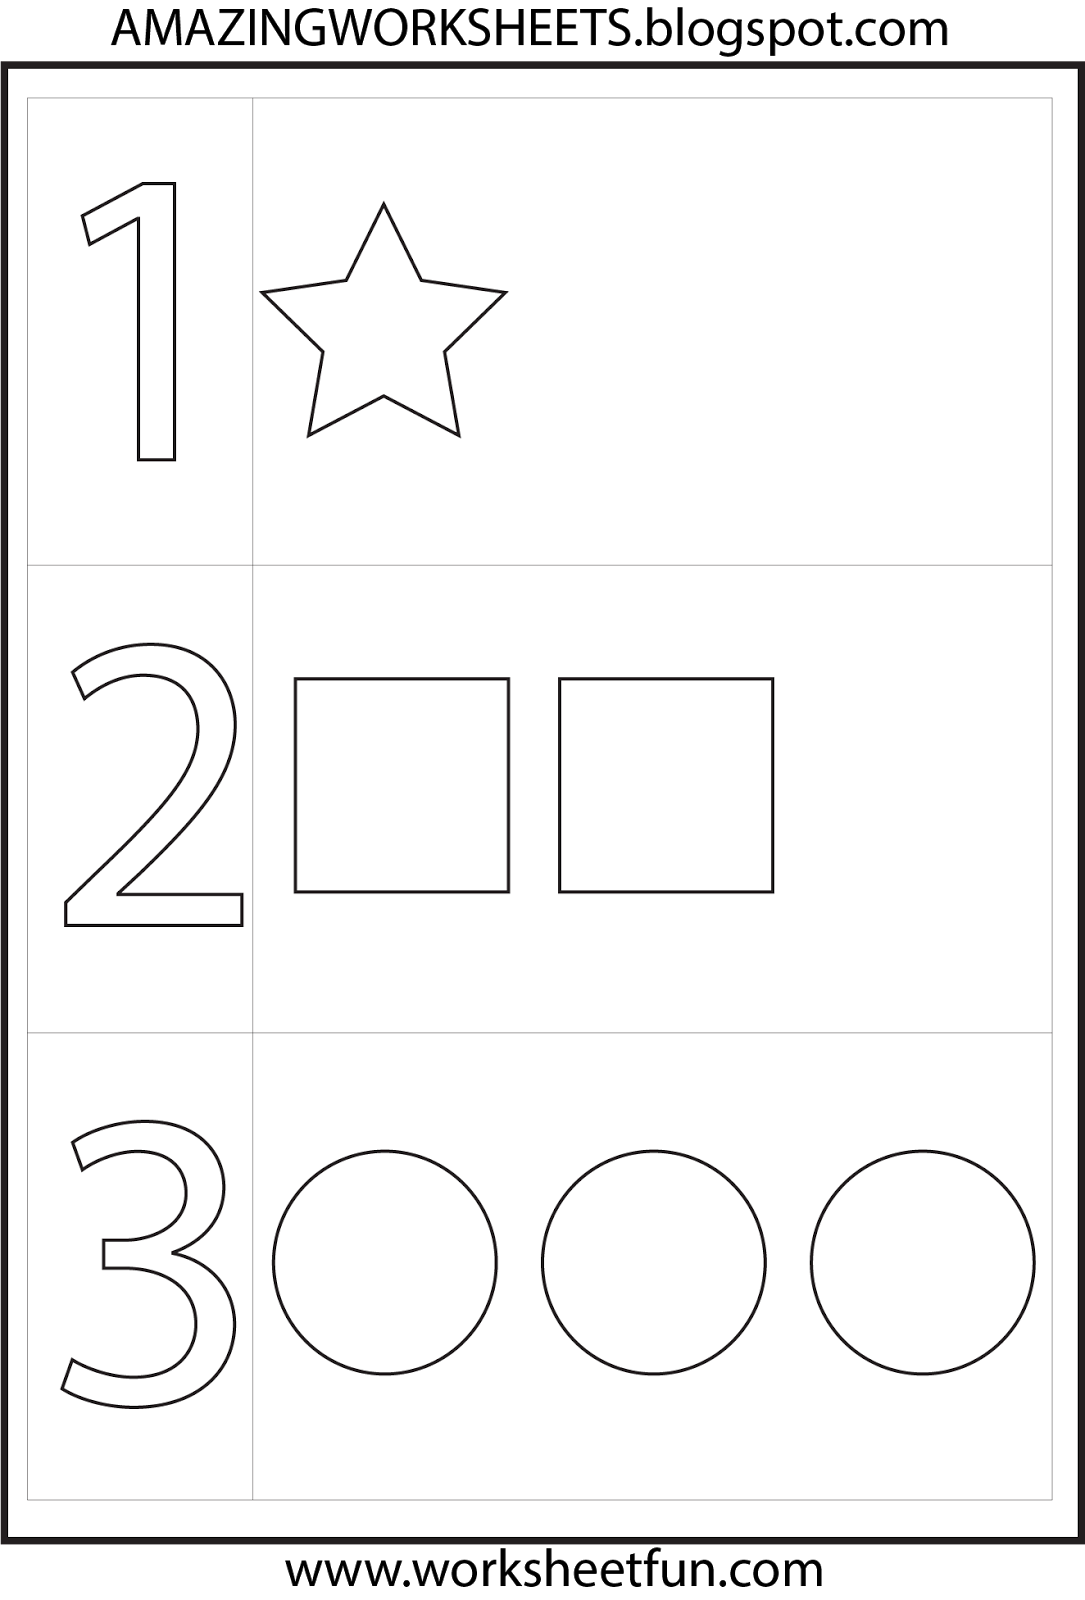 Number Activities For Preschoolers Pinterest